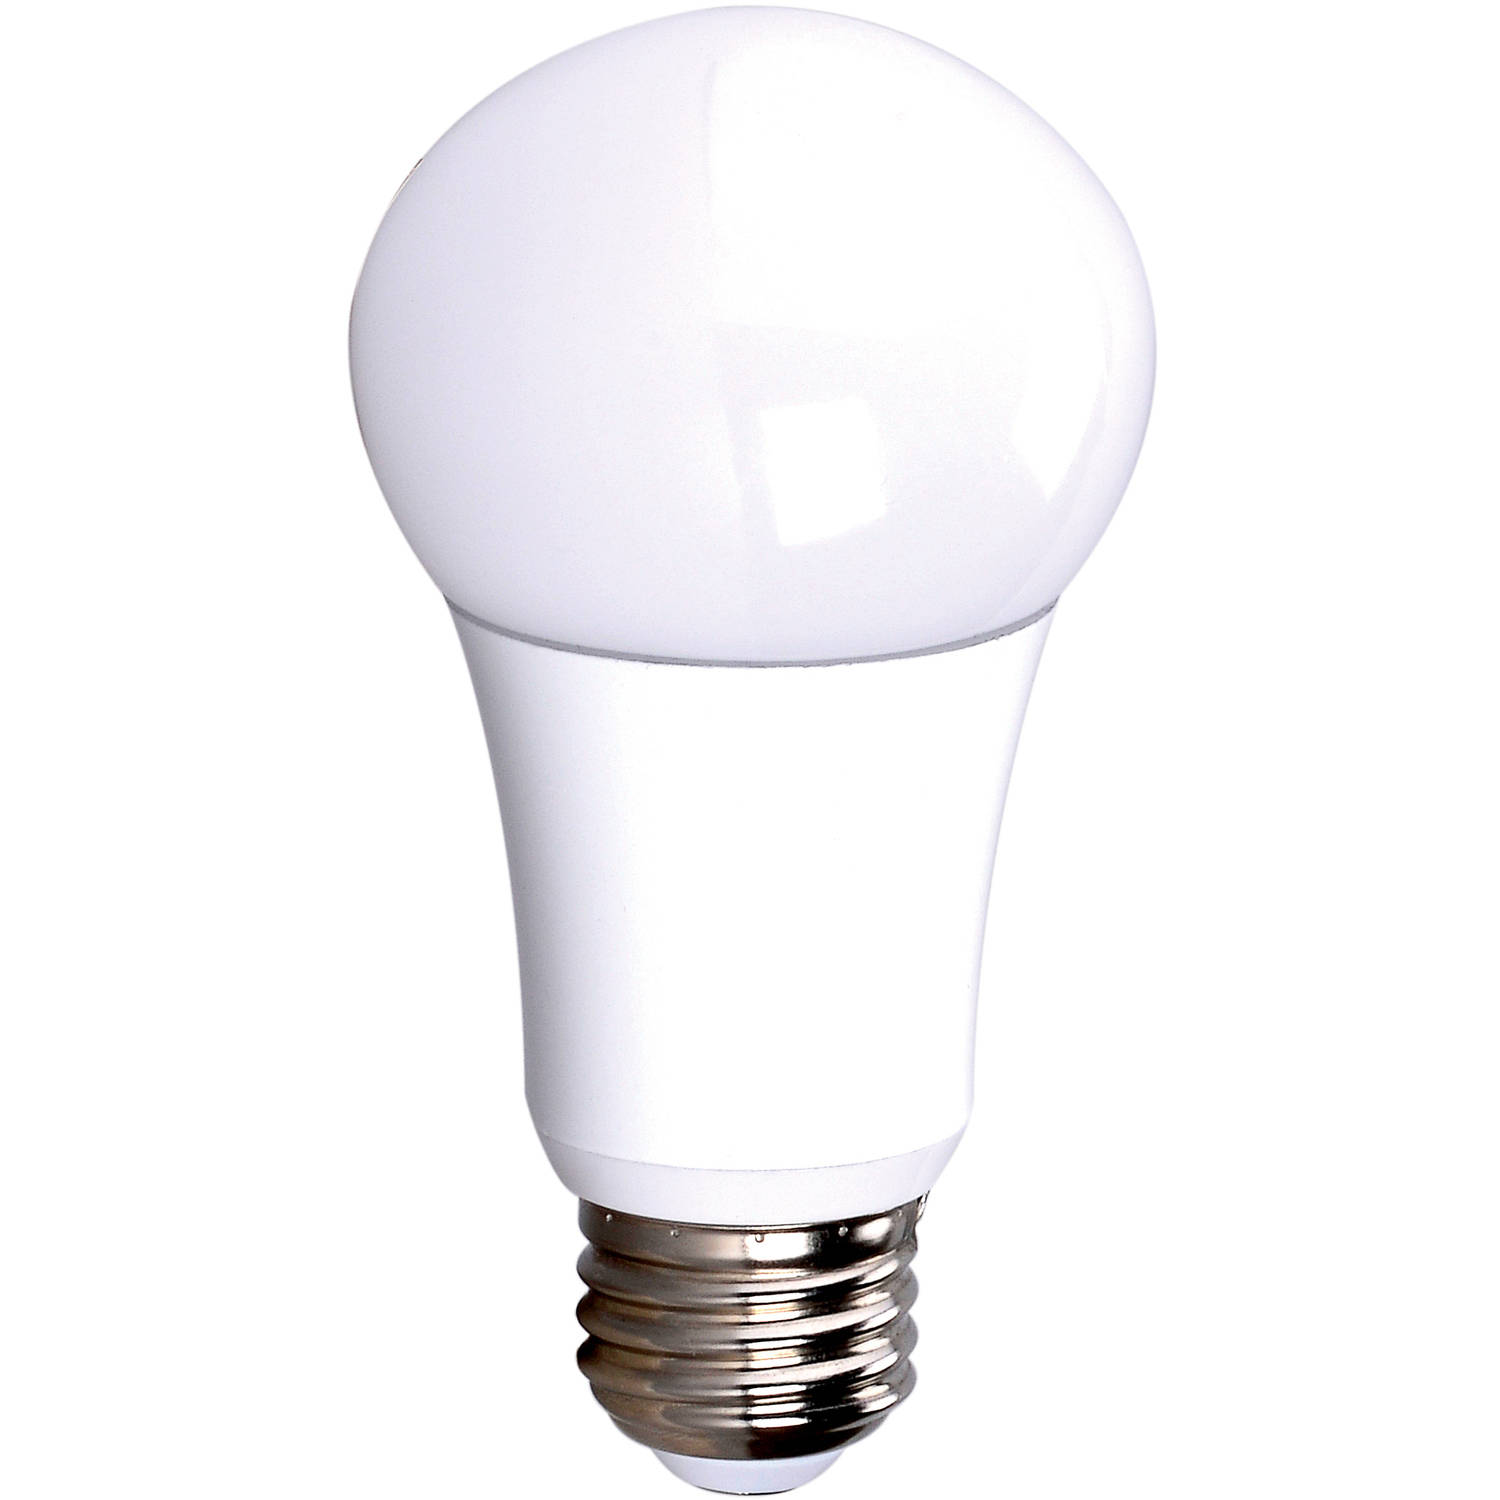 simply conserve led 9w a19 dimmable lightbulb suitable for enclosed fixtures 60w equivalent